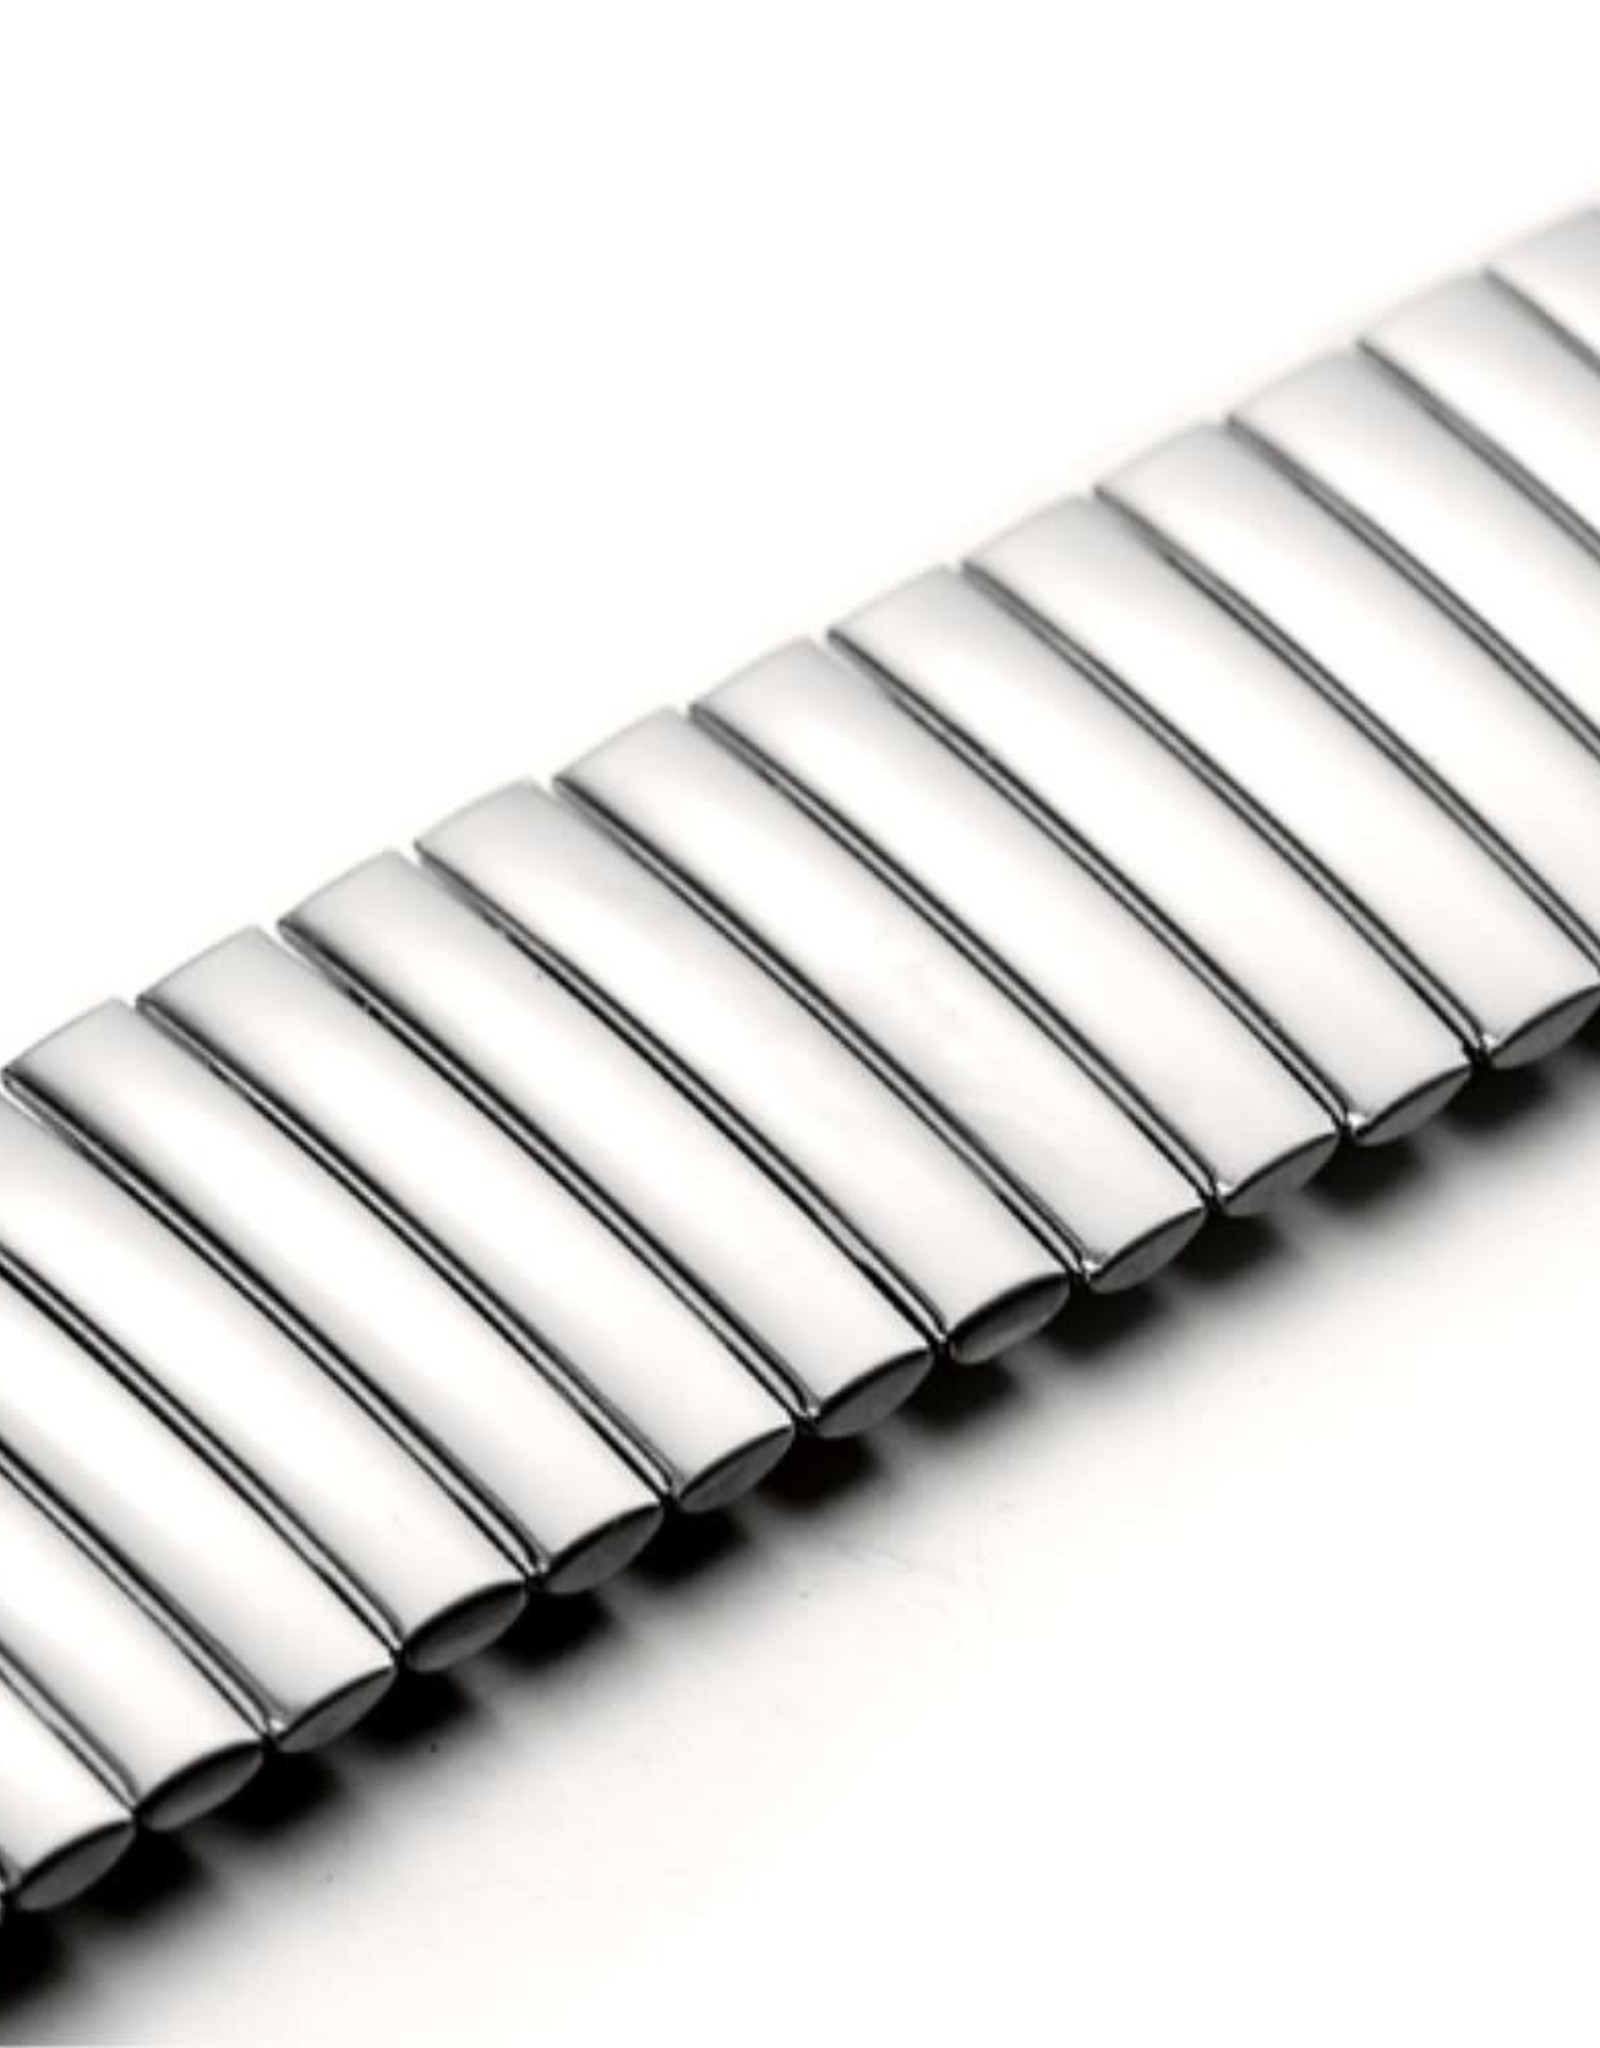 Flexible Stainless Steel Watch Band for Apple Watch Series 5/4 40mm / Series 3/2/1 38mm